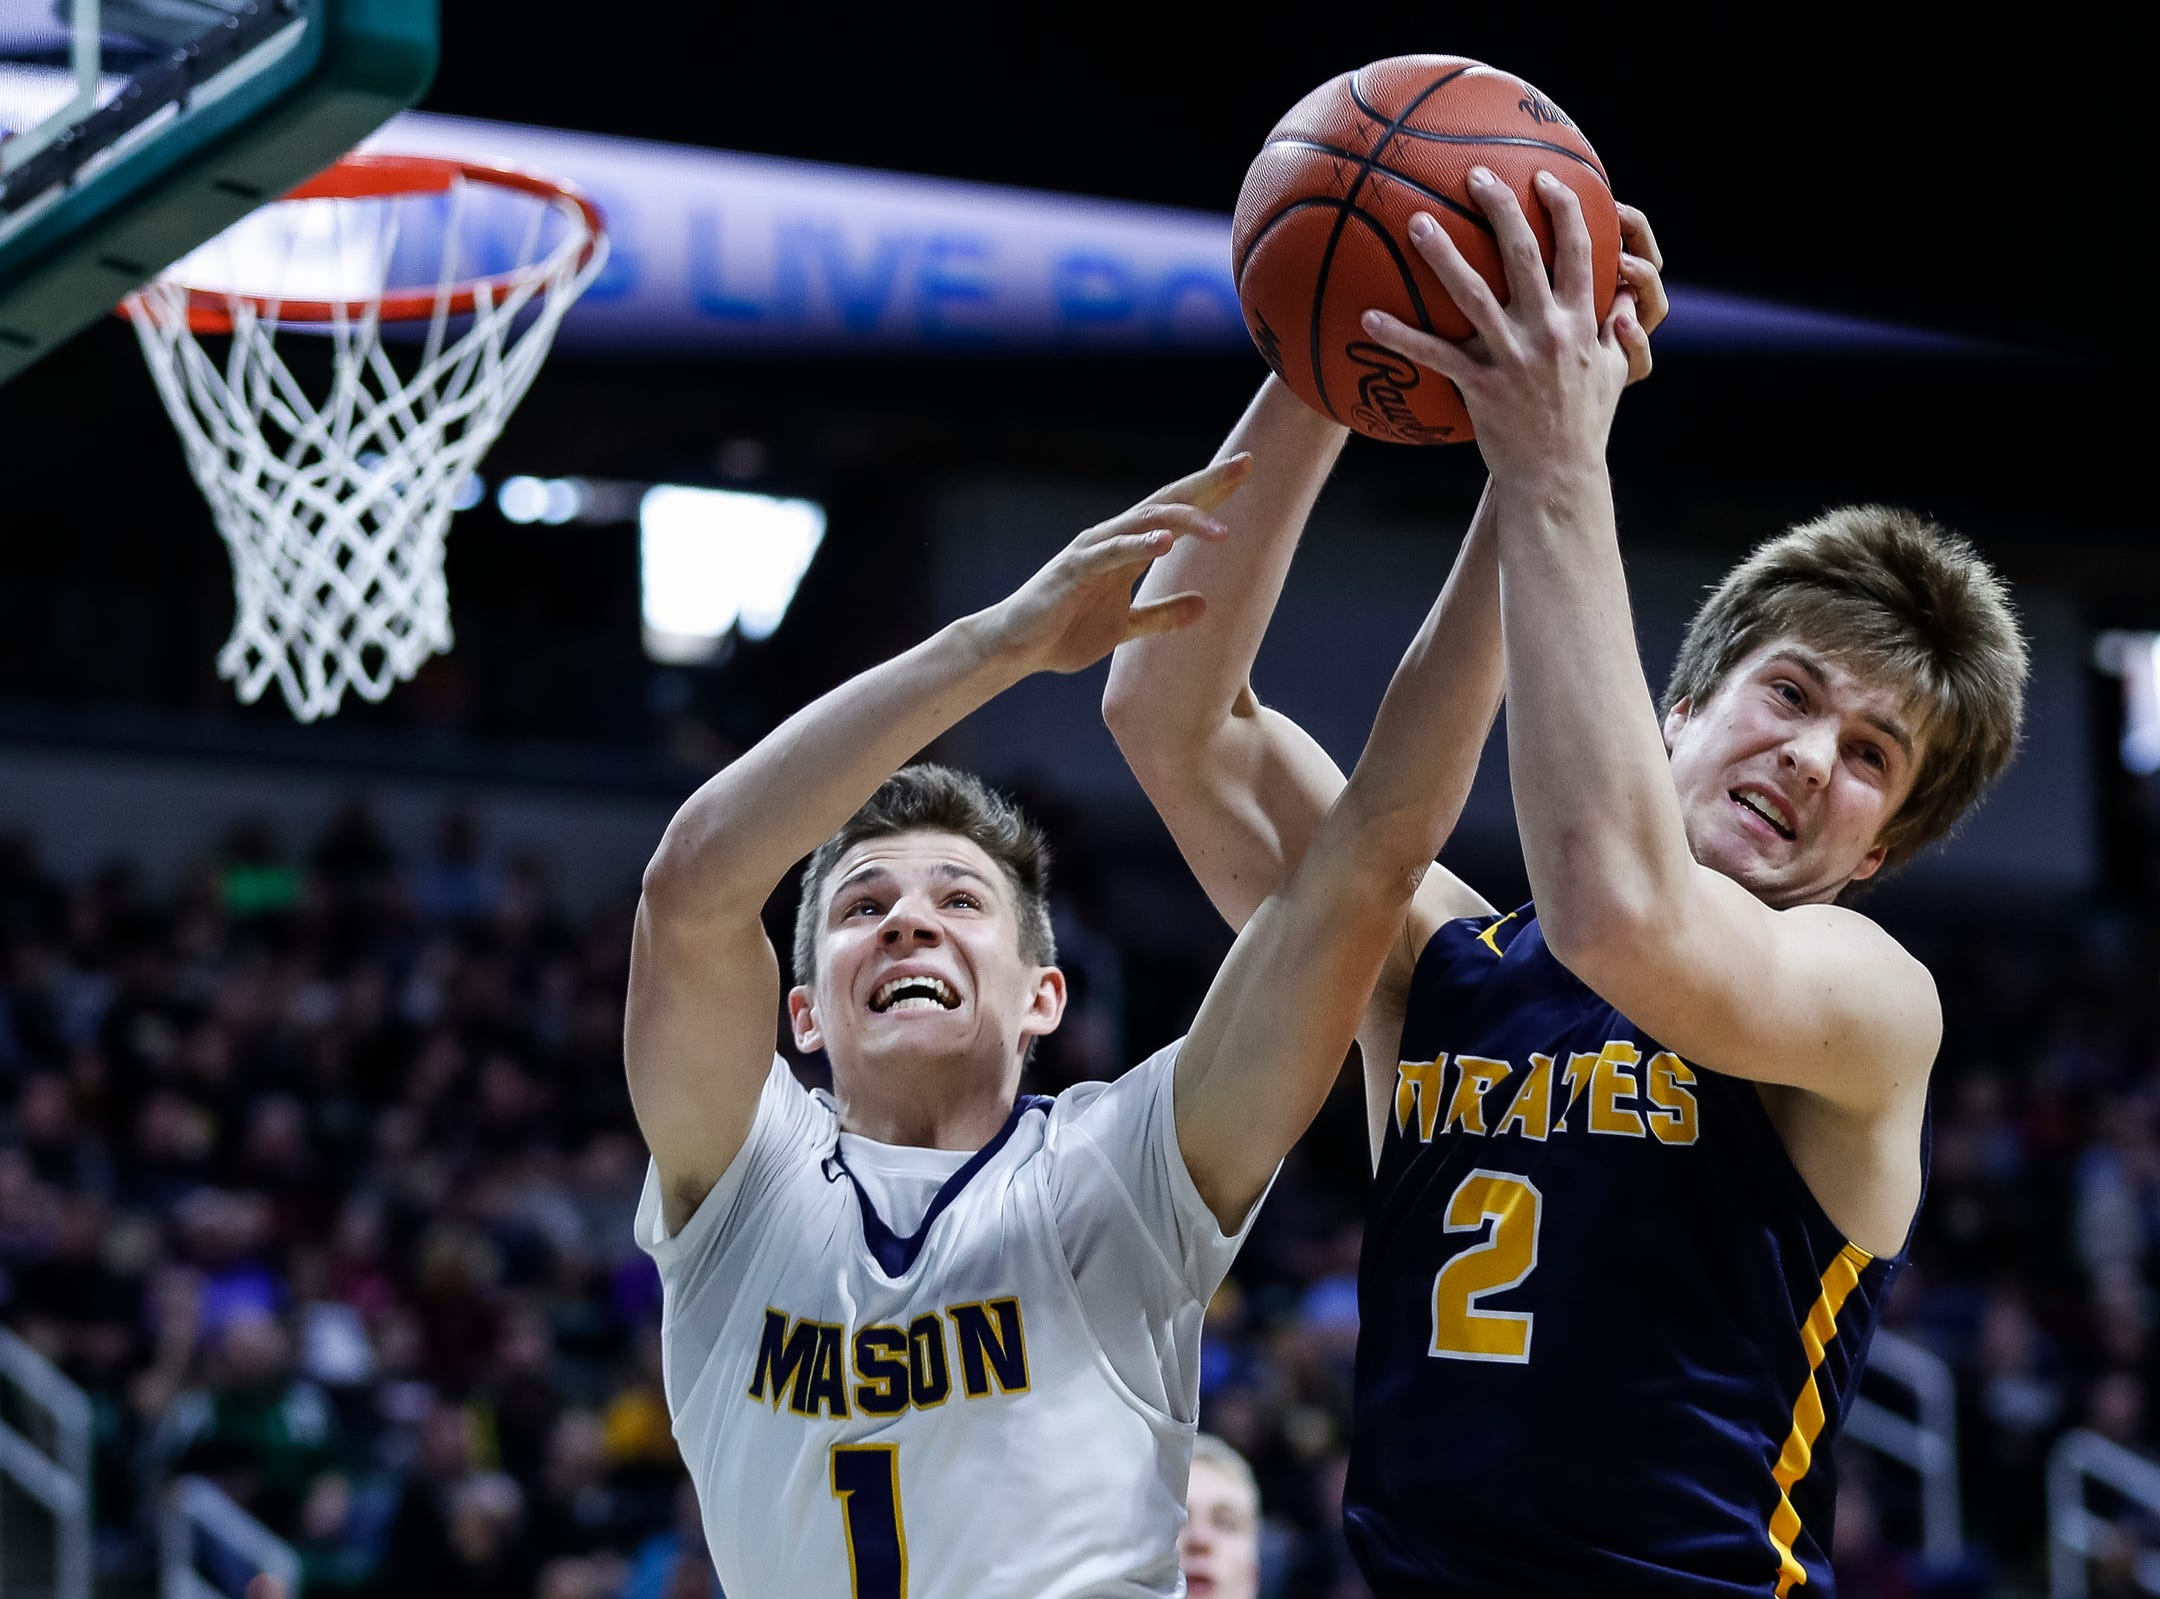 Erie-Mason's Joe Liedel (1) and Pewamo-Westphalia's Nathan Wirth (2) battle for a rebound during the first half of MHSAA Division 3 semifinal at the Breslin Center in East Lansing, Thursday, March 14, 2019.